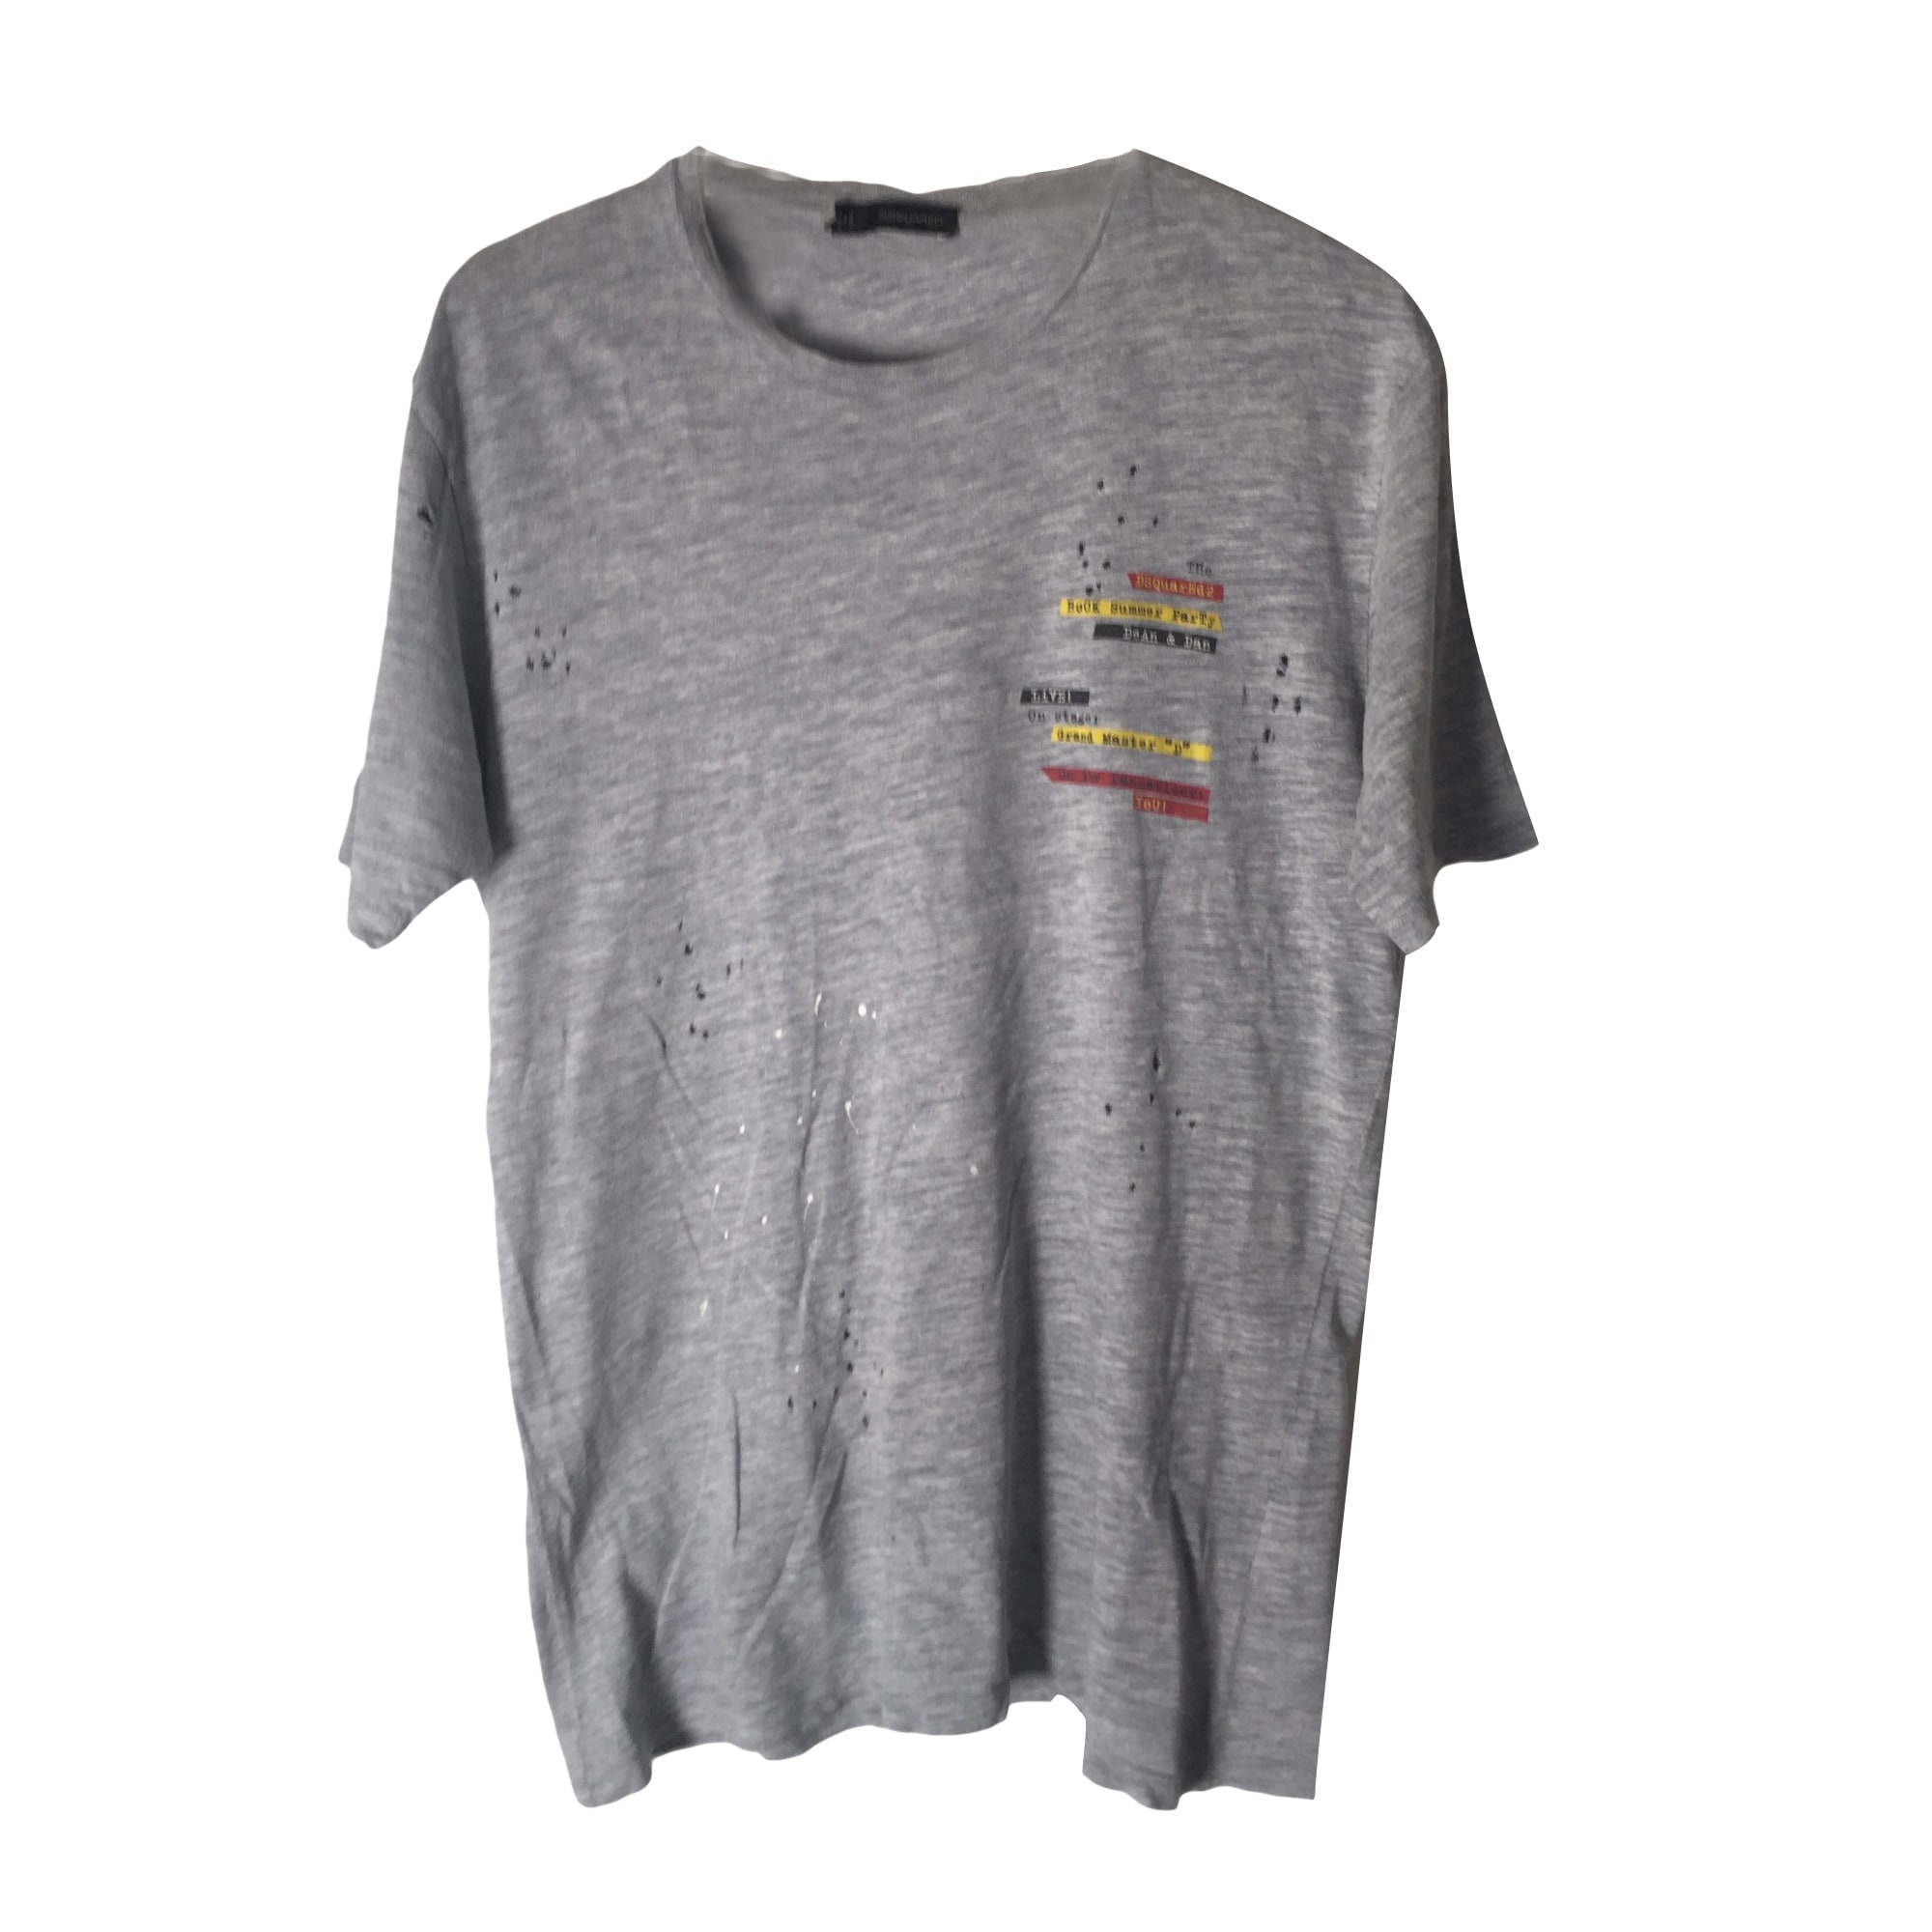 Tee-shirt DSQUARED2 Gris, anthracite